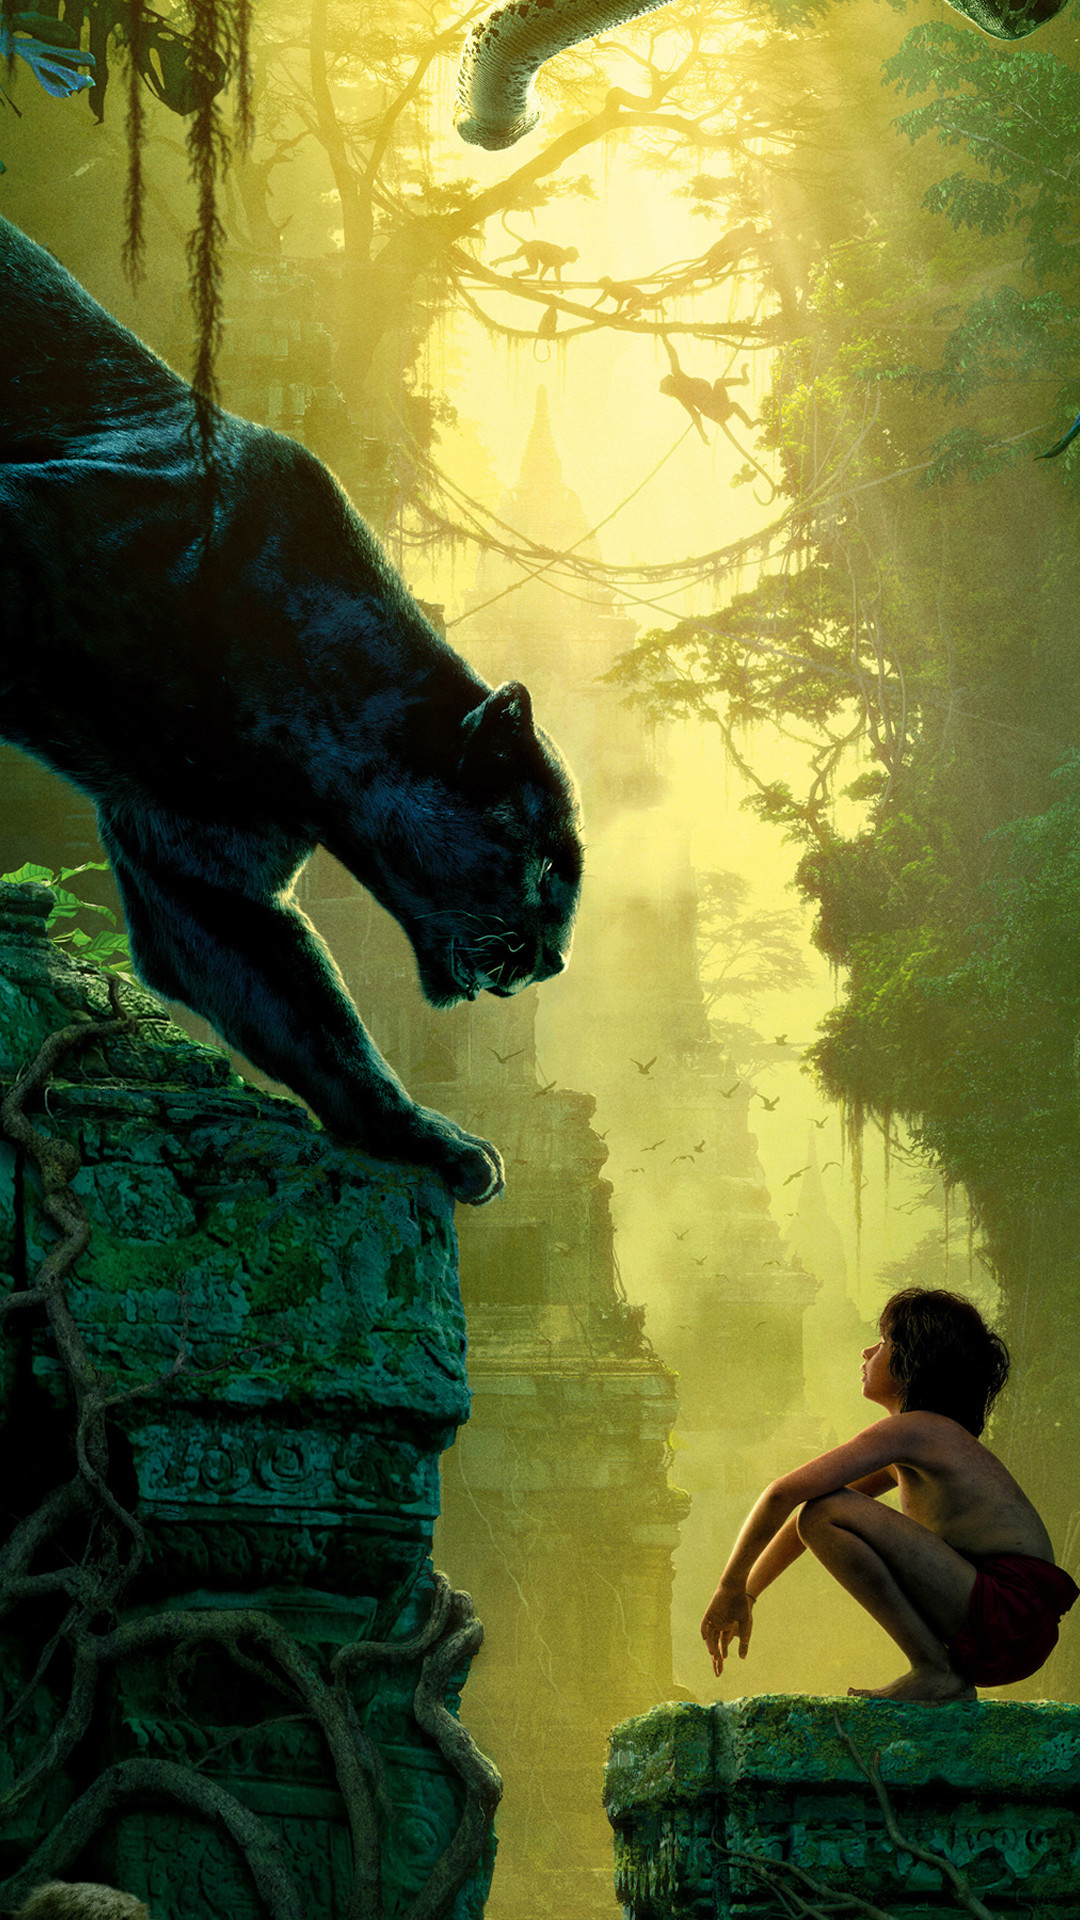 Download The Jungle Book 2016 Movie HD Wallpapers